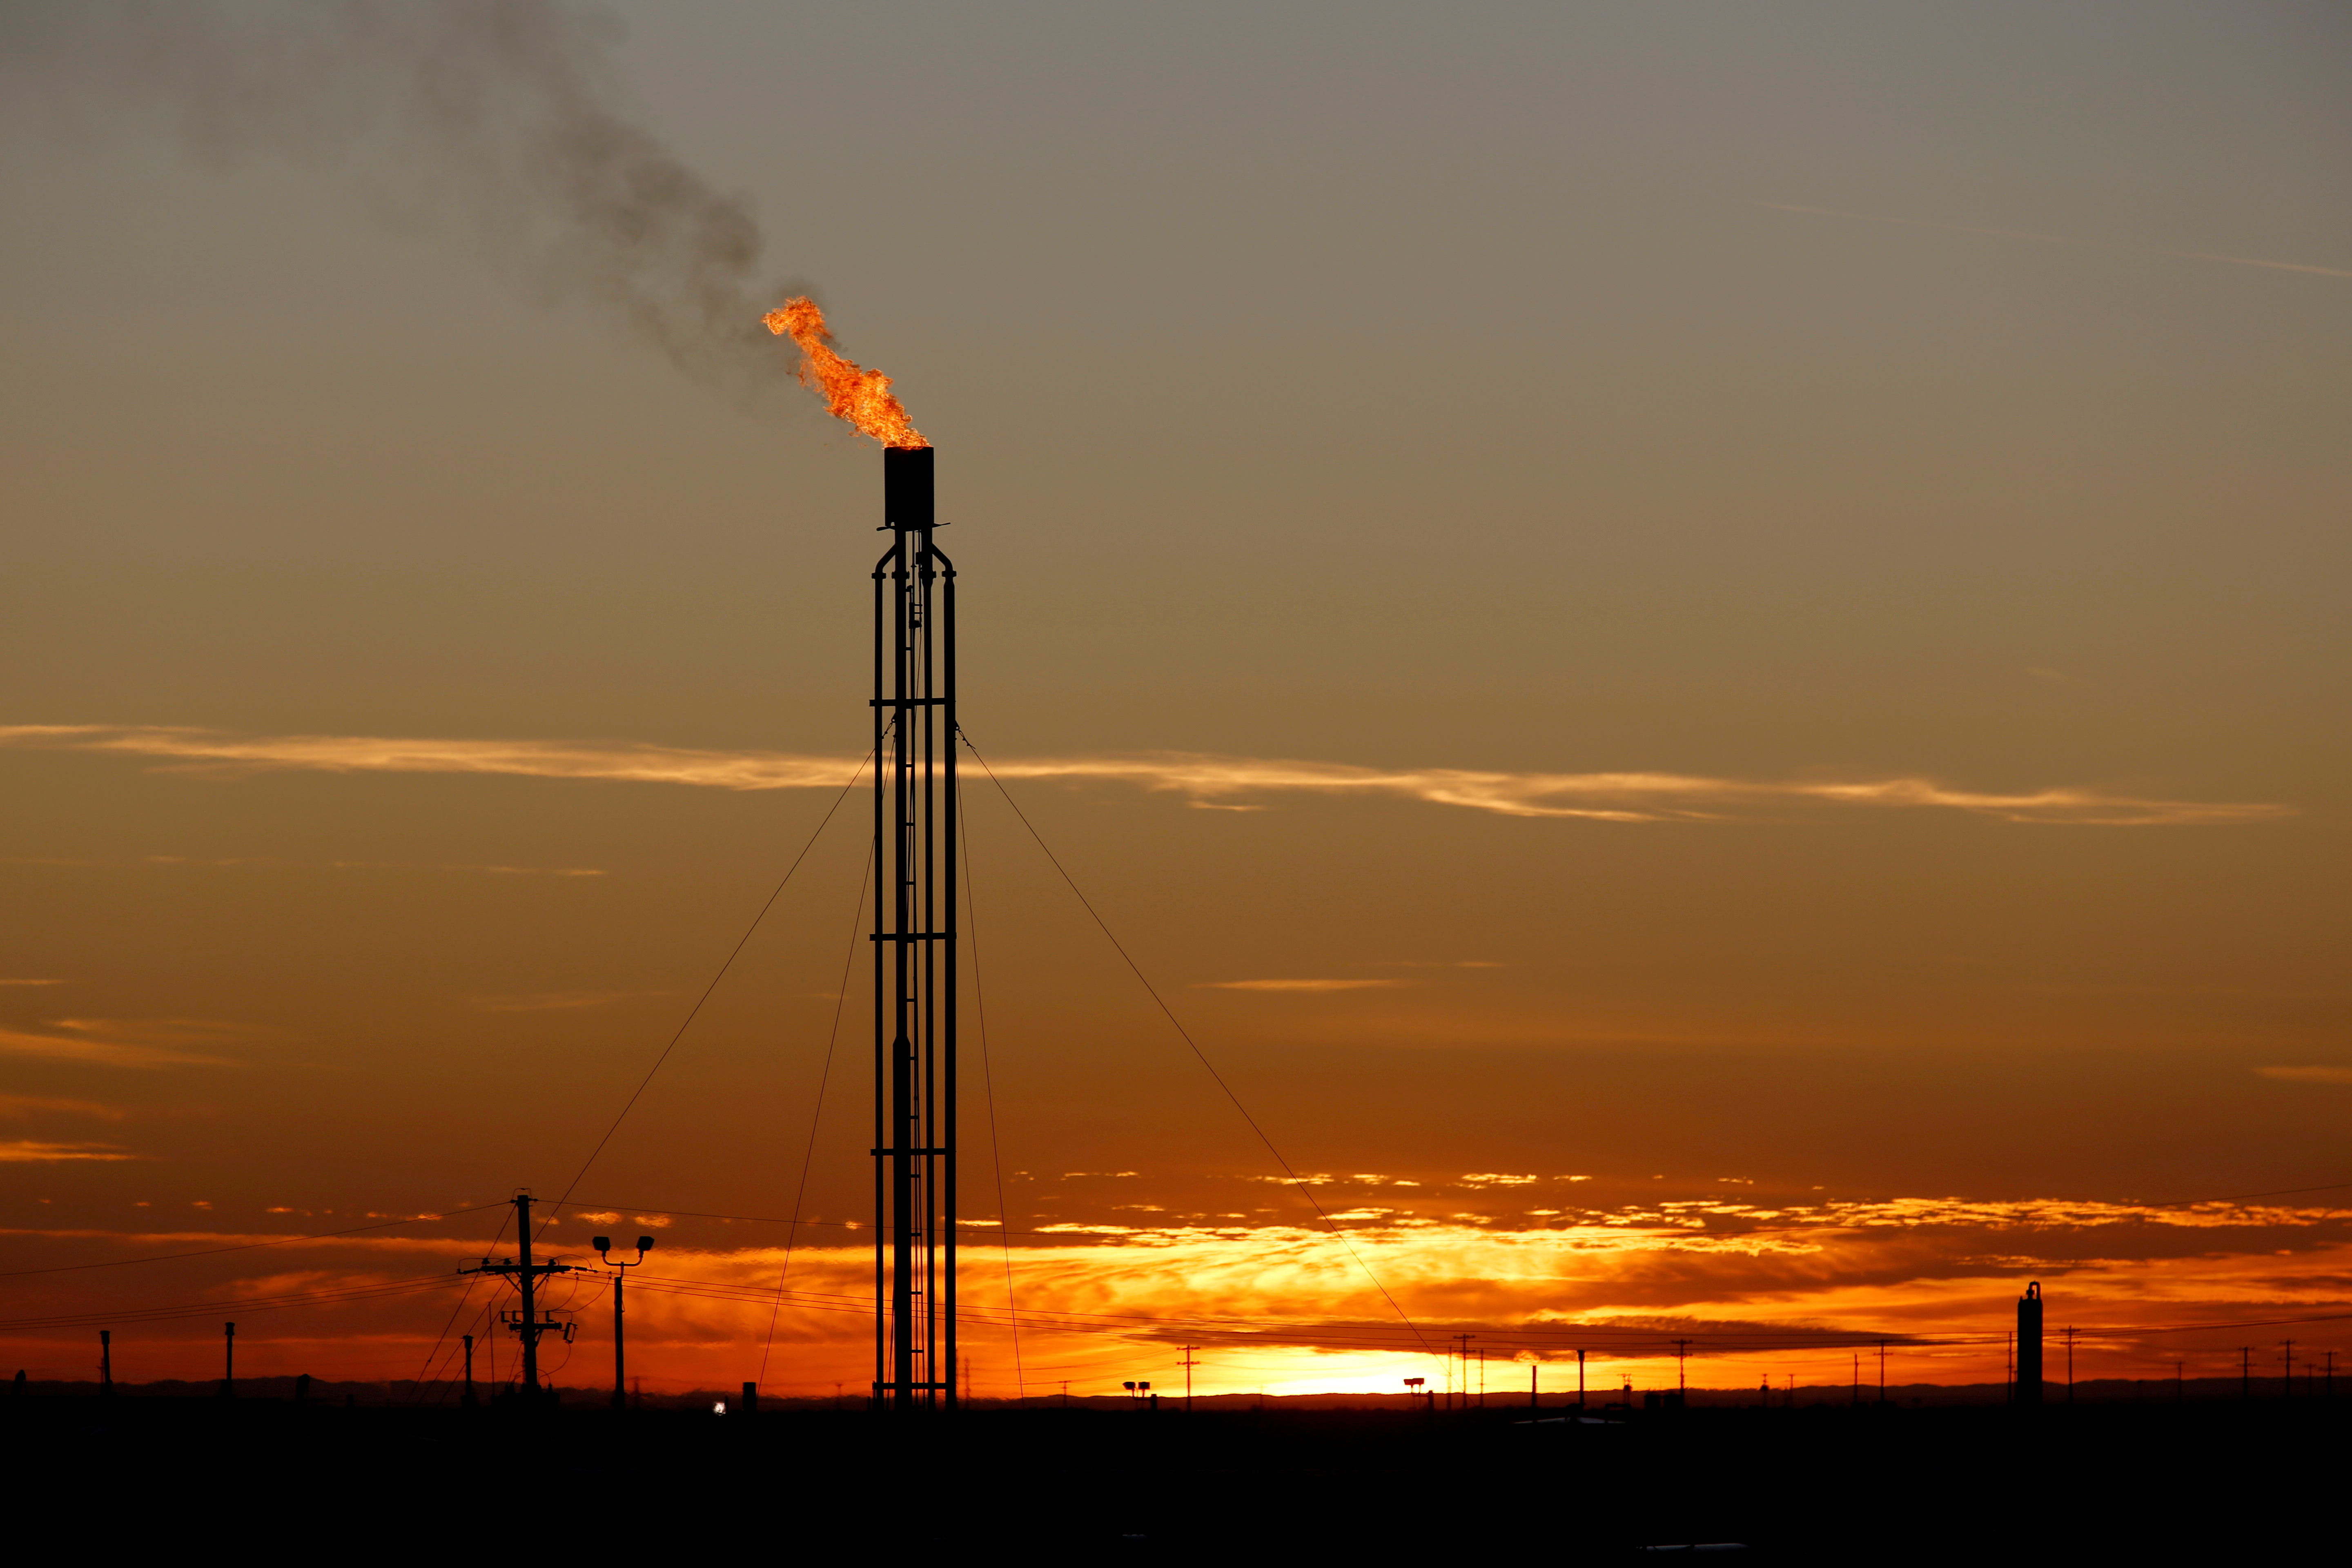 A flare burns excess natural gas in the Permian Basin in Loving County, Texas, U.S. November 23, 2019.  REUTERS/Angus Mordant